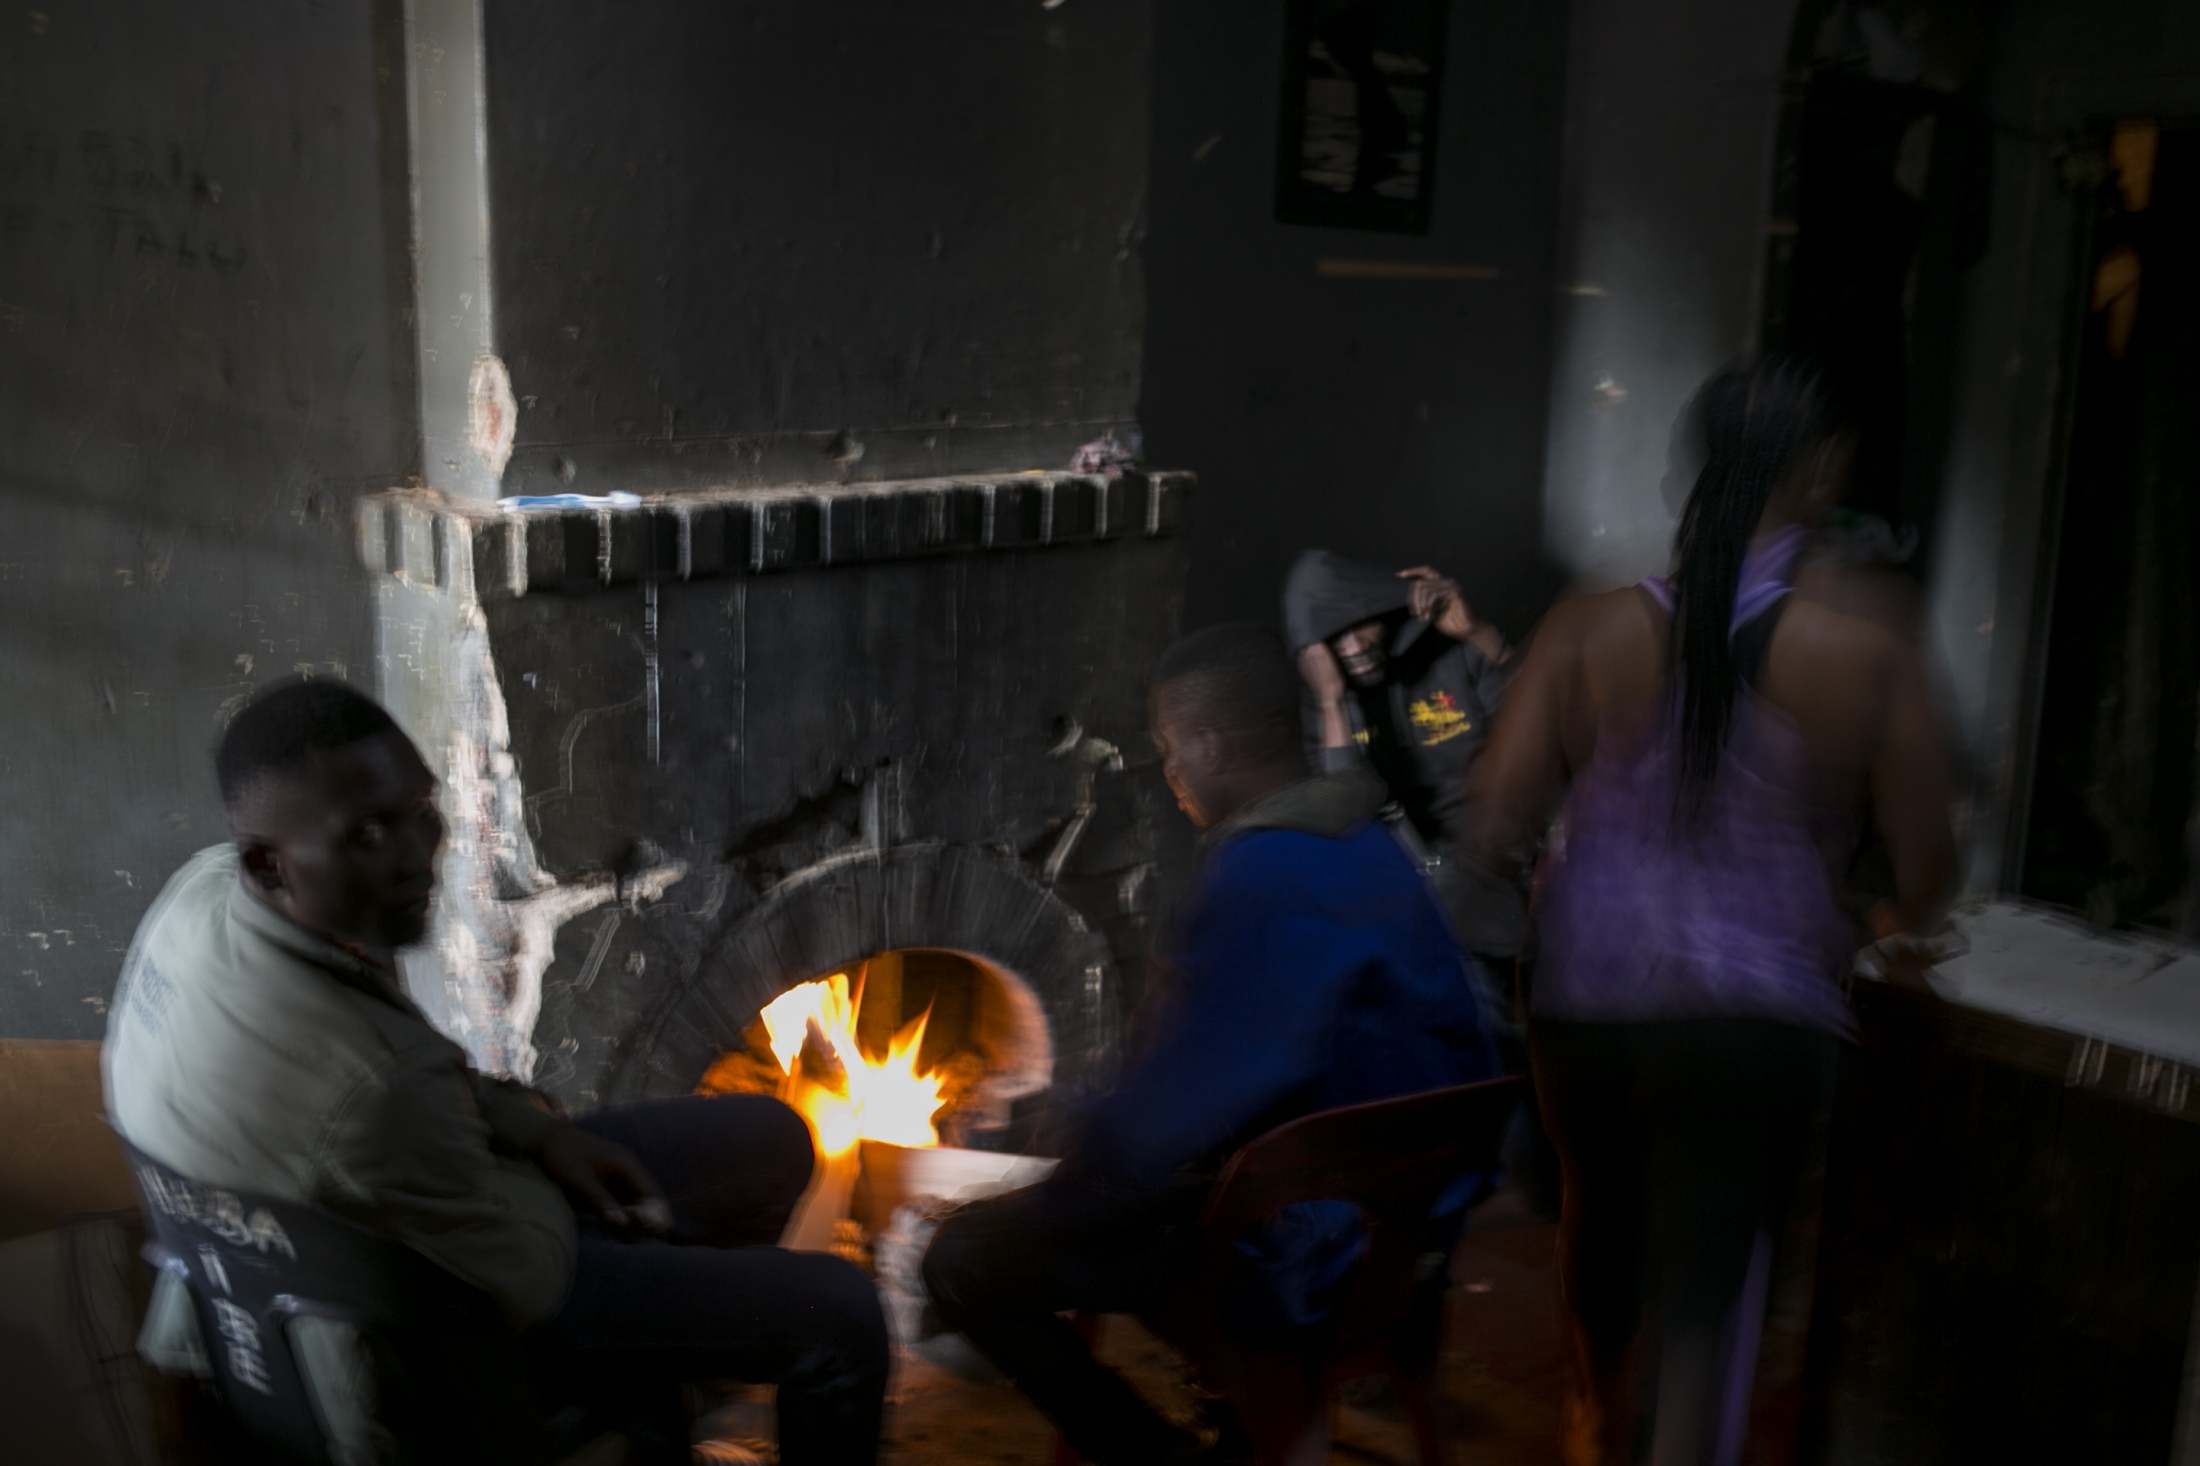 People warm themselves by a fire place in an abandoned building